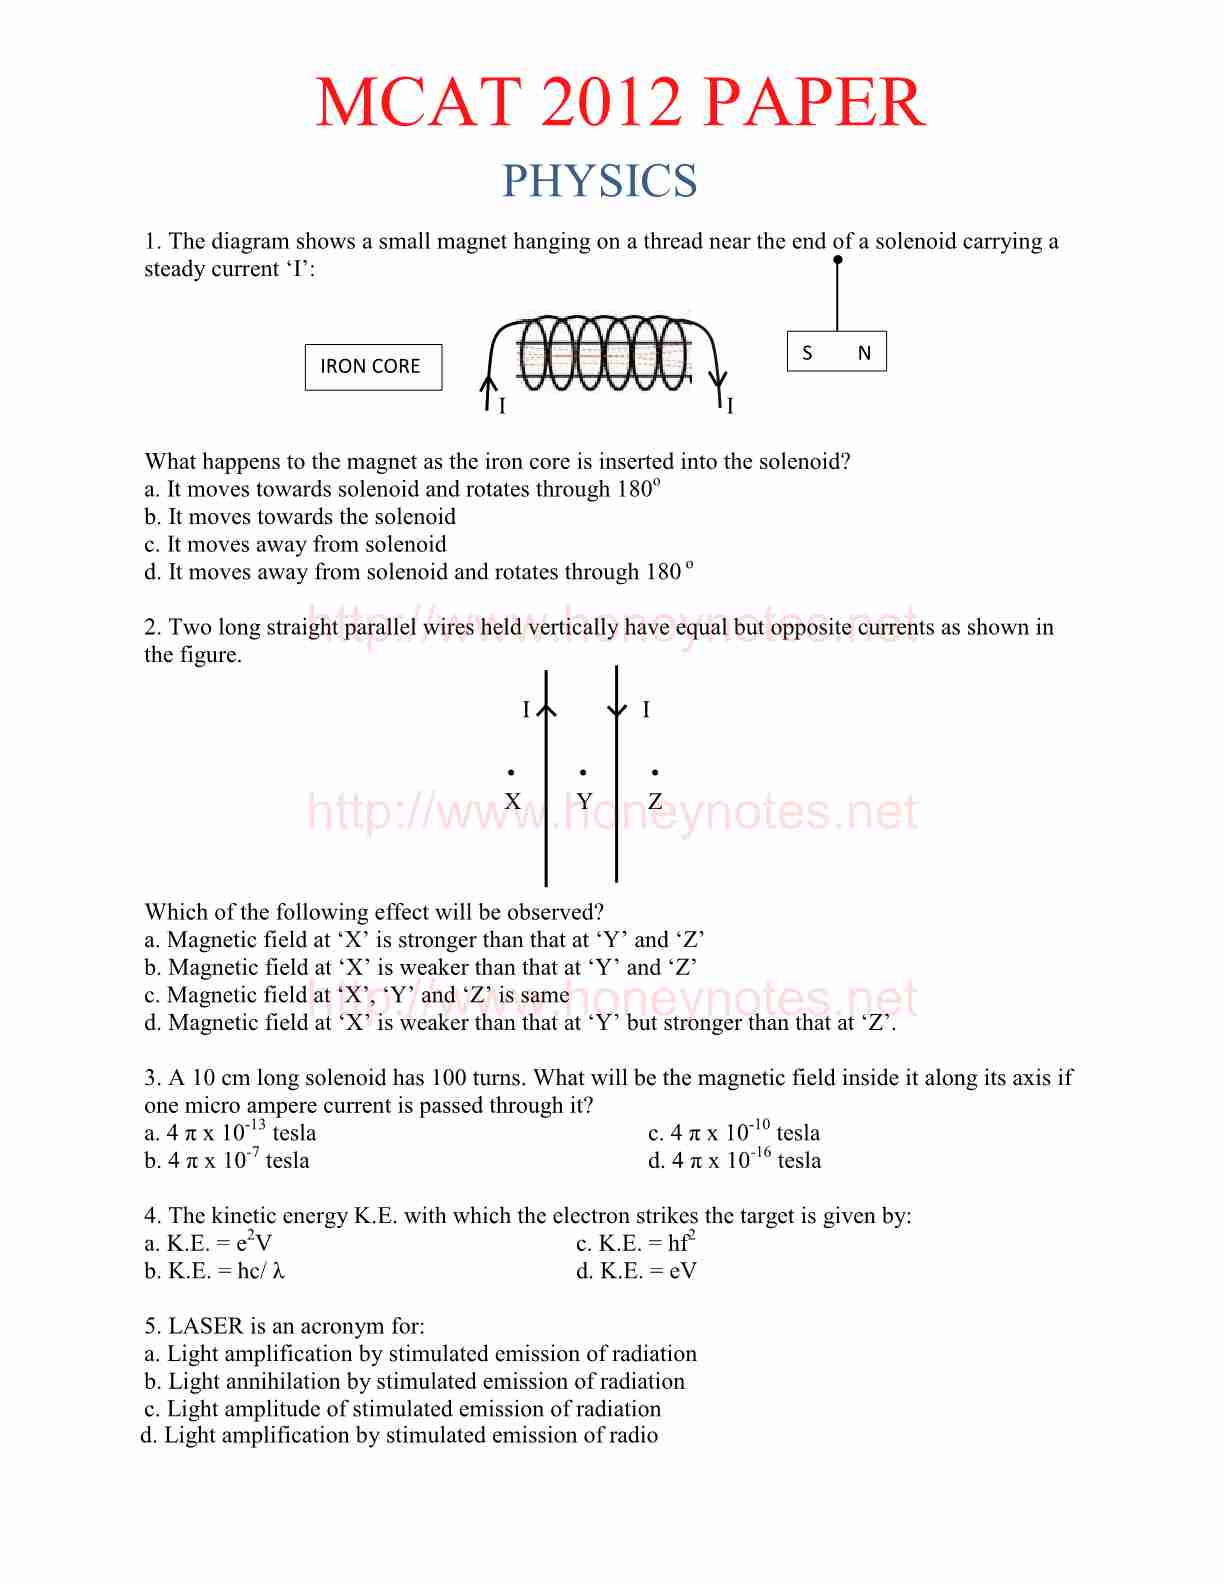 Entry test mcqs for medical, physics entry test mcqs for engineering, entry test mcqs for medical 2017, physics entry test papers, mcat physics mcqs pdf, mcat mcqs of physics 2012, mcat mcqs chapter wise (physics), mcat mcqs 2017, entry test mcqs of physics, entry test mcqs physics 2013, entry test mcqs for engineering 2017, entry test mcqs for medical 2016, entry test mcqs for medical past papers, biology mcqs for entry test with answers, mcat mcqs biology with answers, mcat mcqs physics, mcat physics mcqs online test, mcat mcqs physics, entry test mcqs for medical 2016, online entry test preparation mcat.